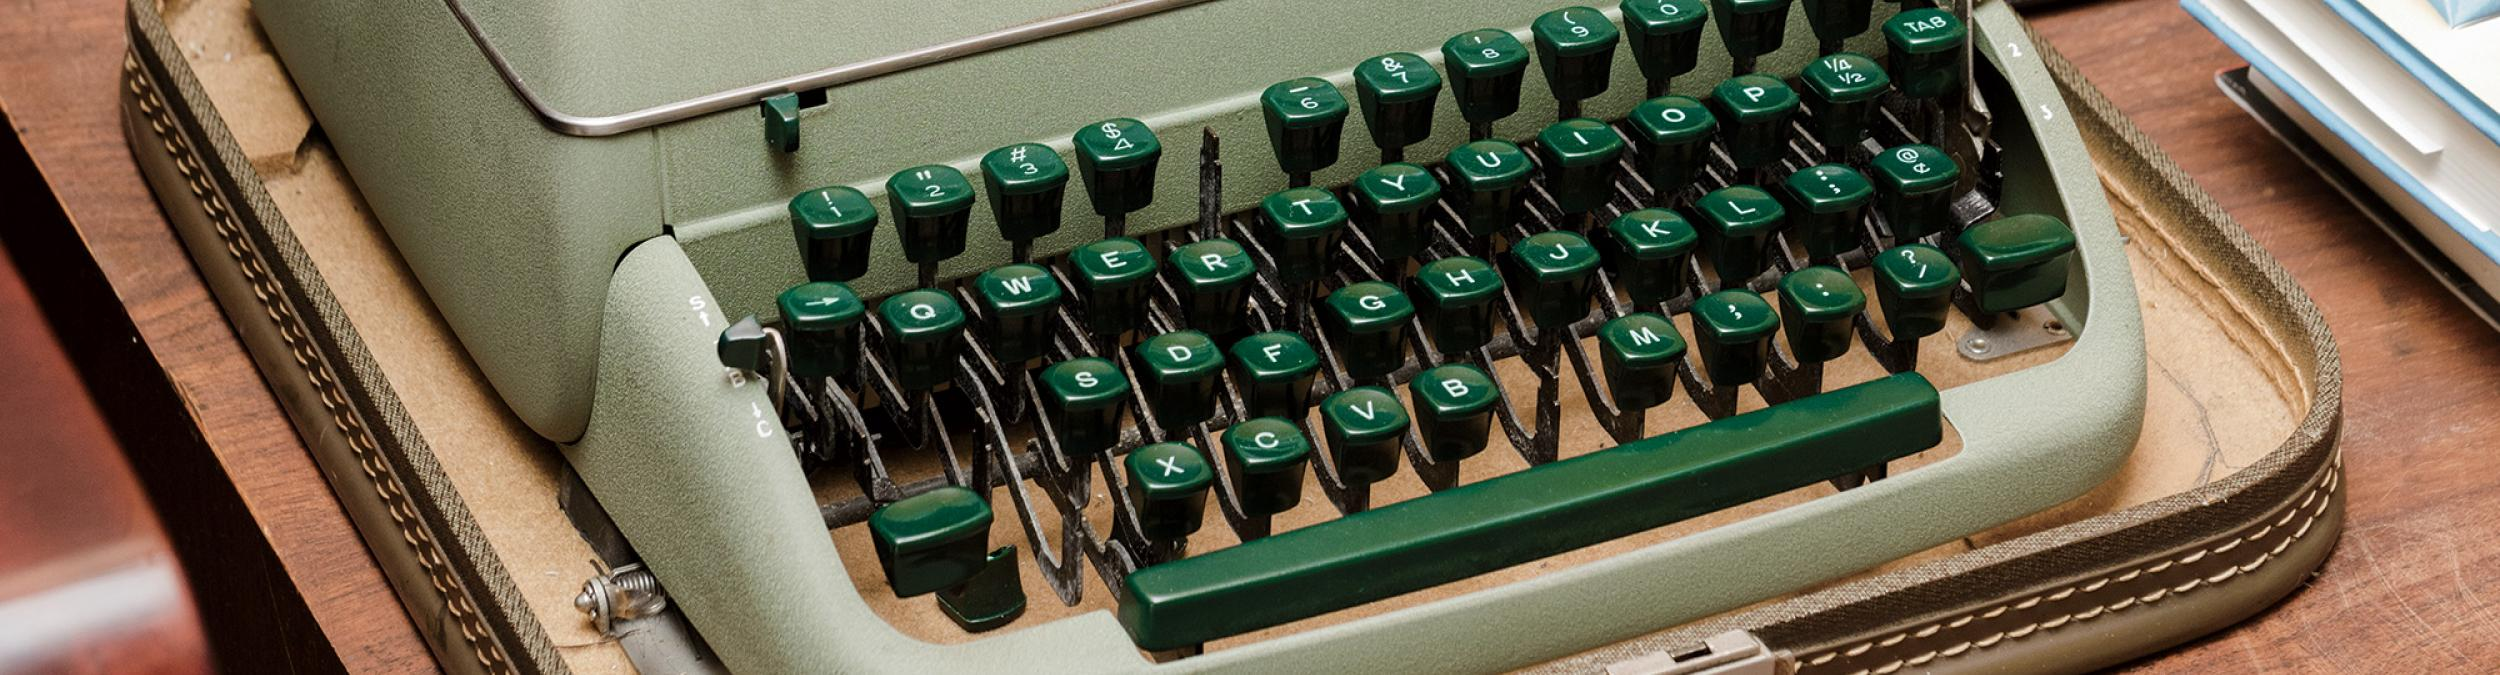 Smith_3_typewriter_BG